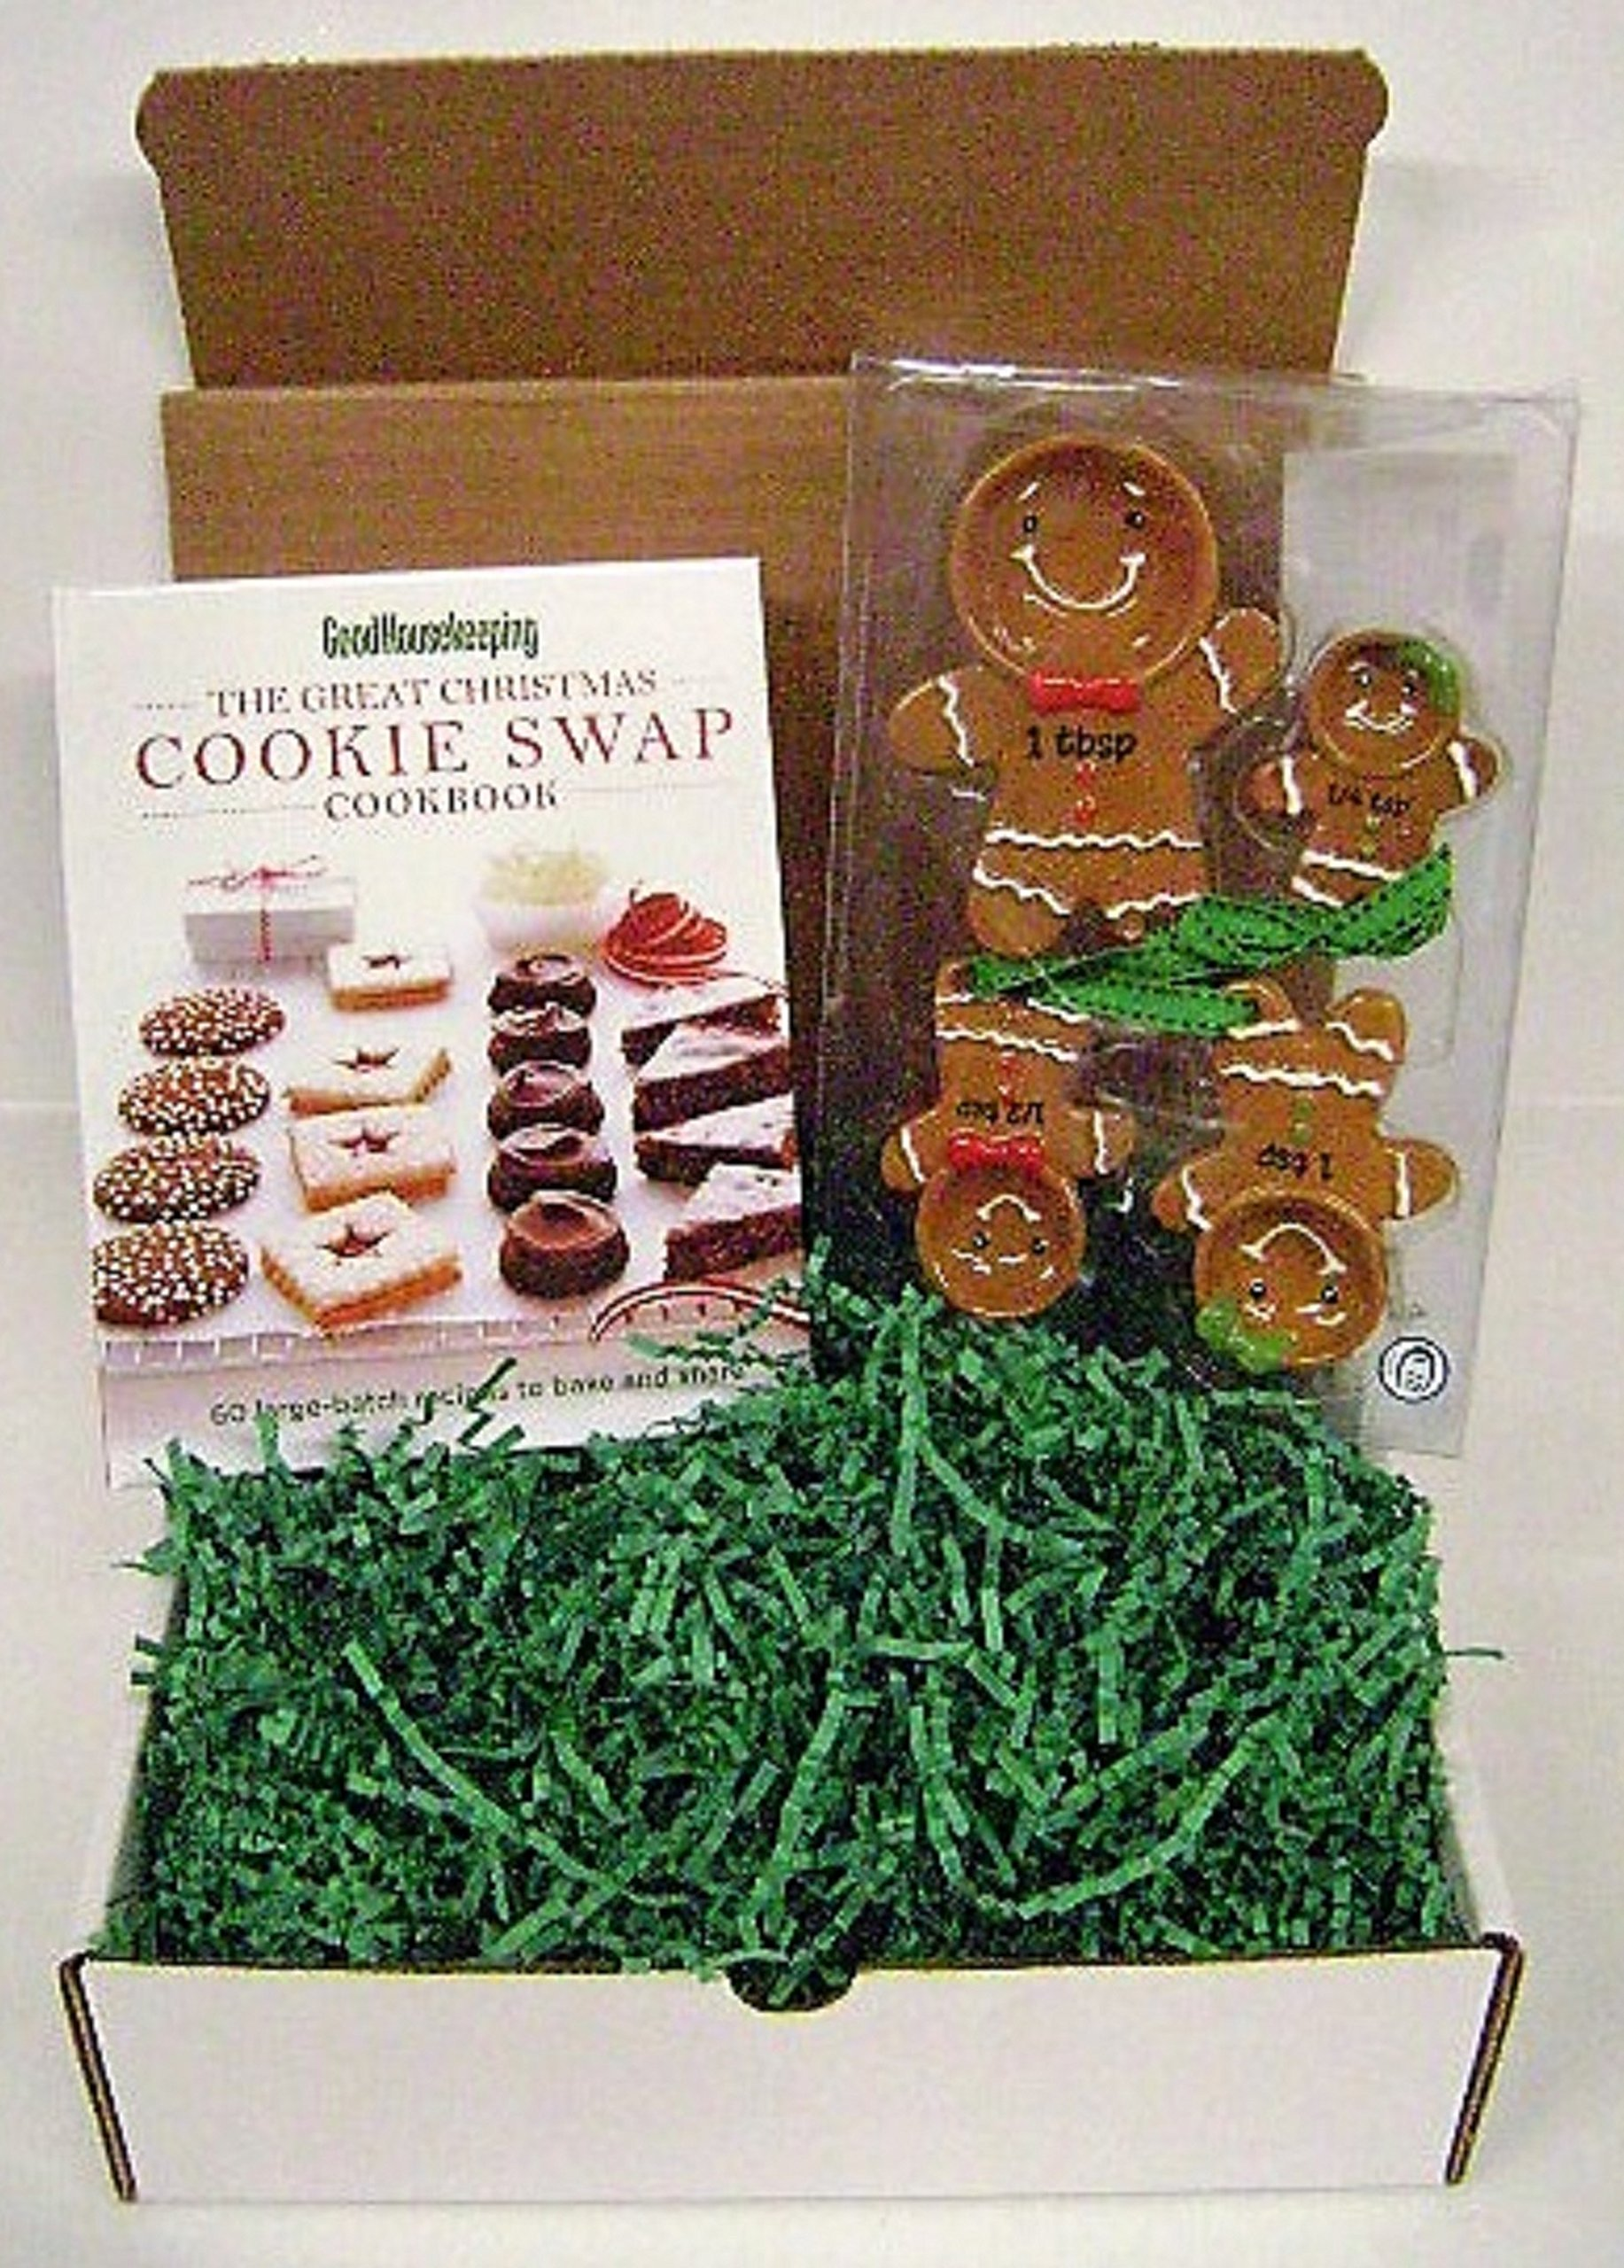 Gingerbread Measuring Spoon Set with GoodHousekeeping Cookie Cookbook Gift Set